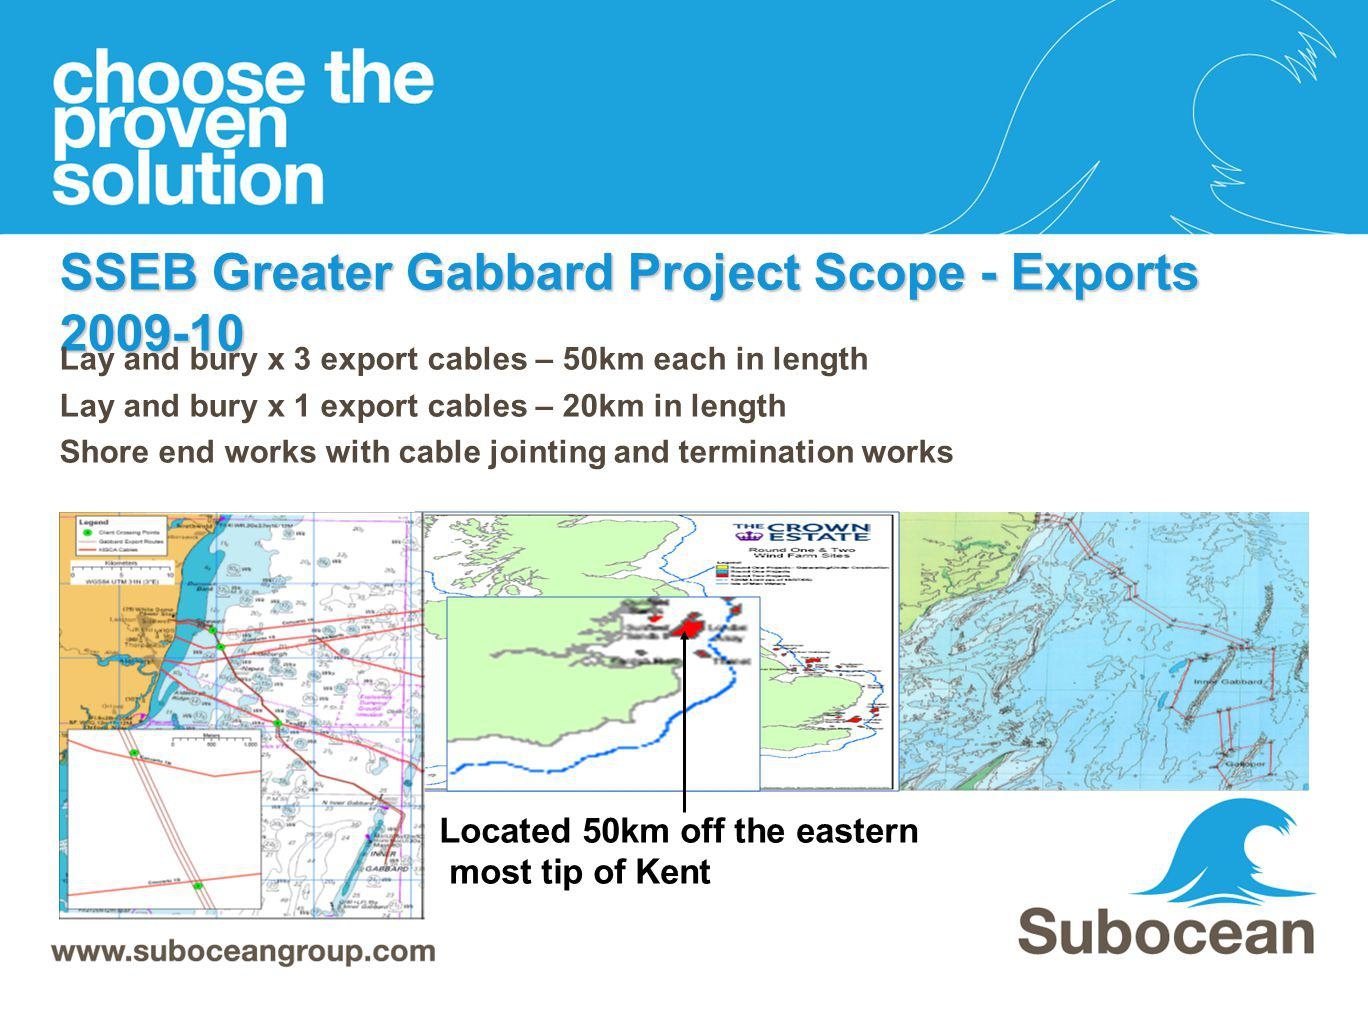 SSEB Greater Gabbard Project Scope - Exports 2009-10